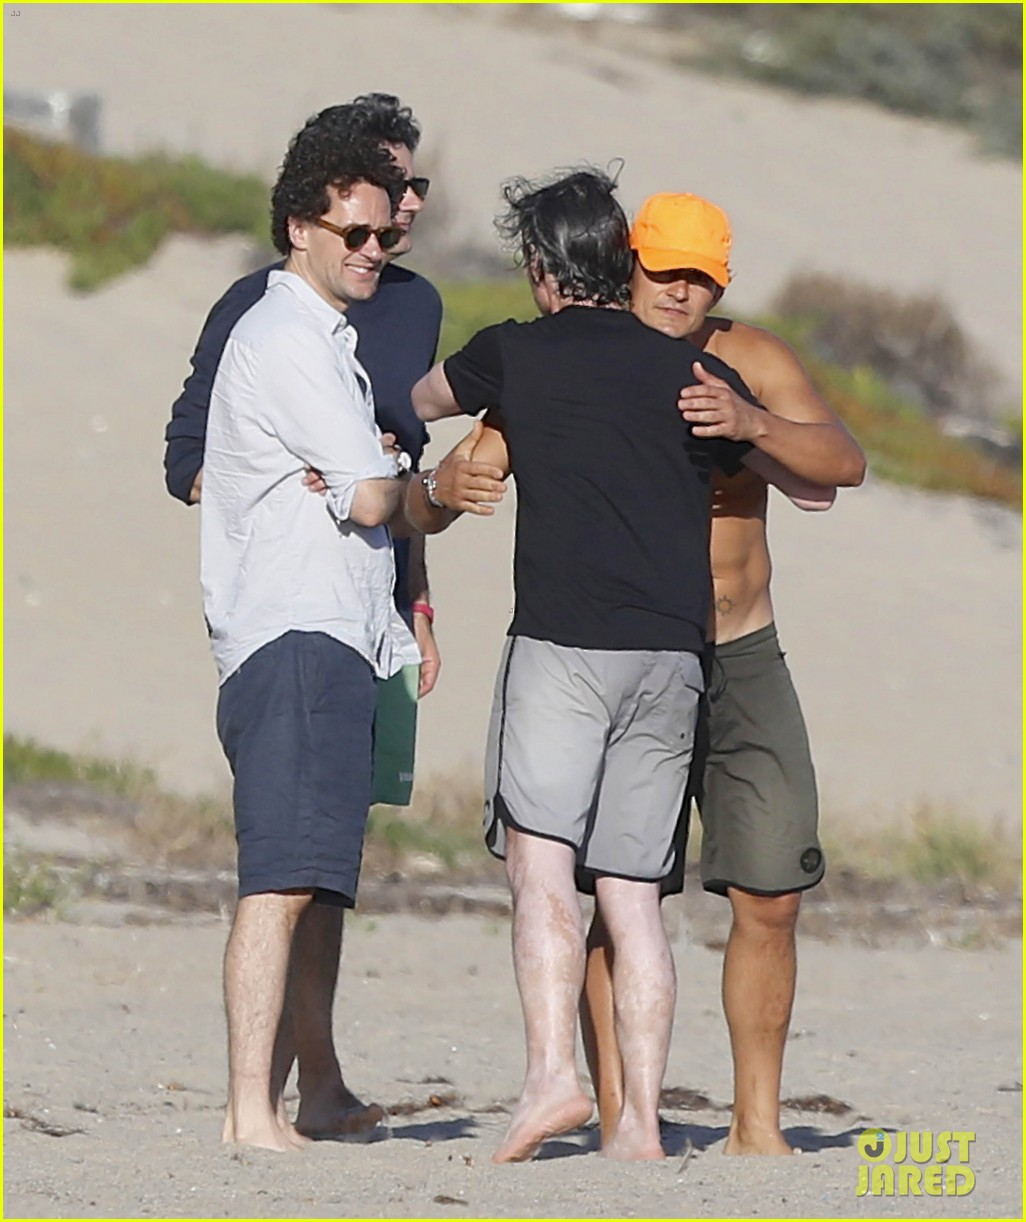 Orlando Bloom Looks Ripped While Shirtless on Malibu Beach: Photo 3476952   Kenny Chesney, Laird